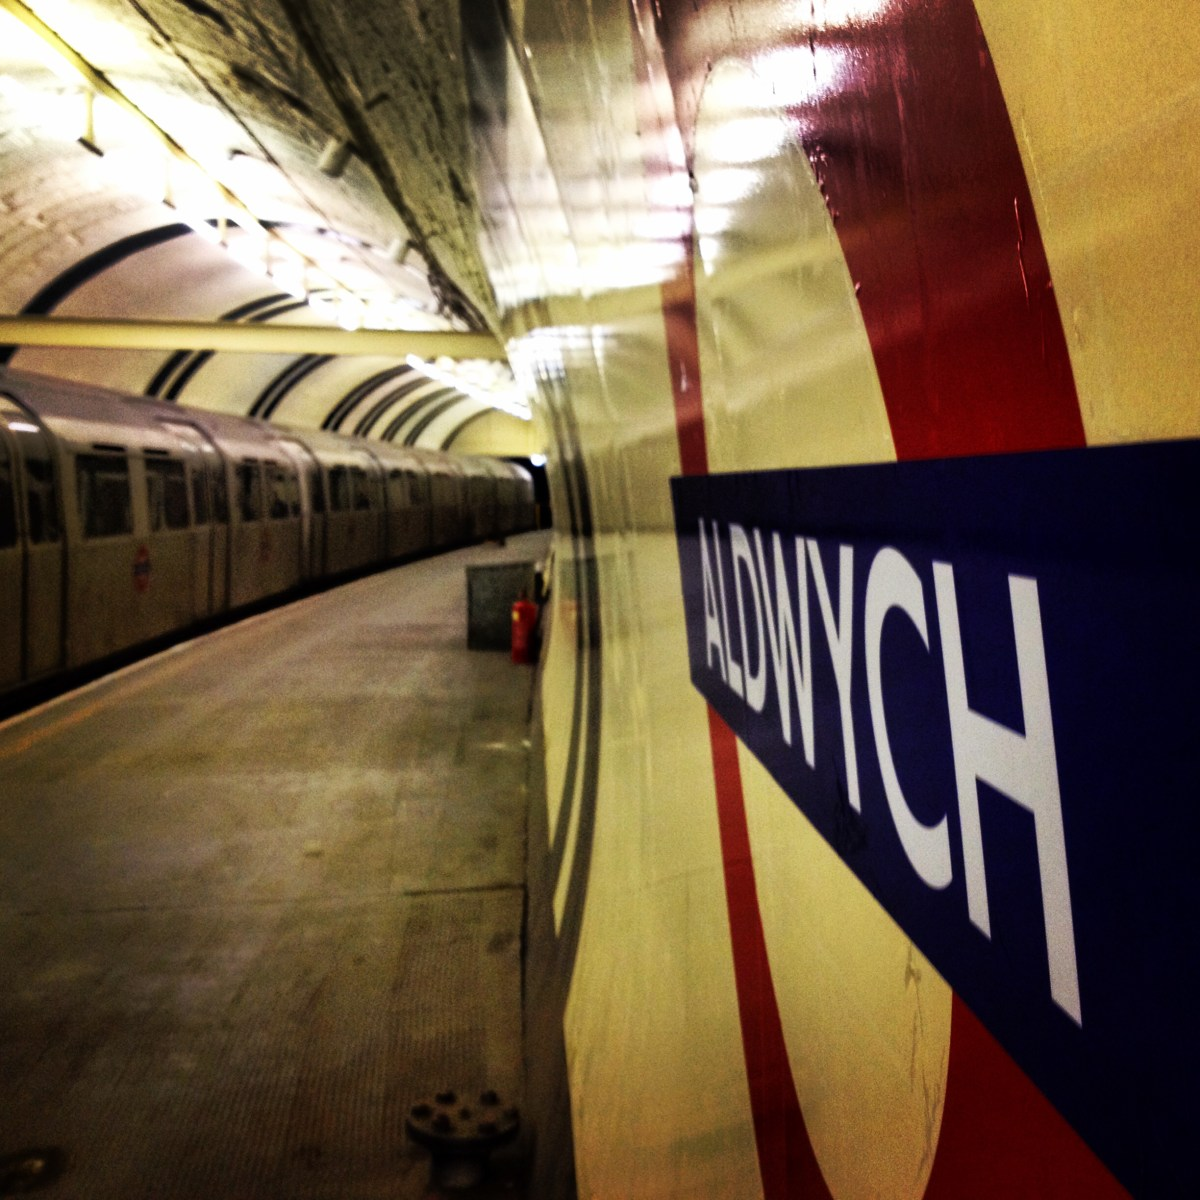 Adventuring underground at Aldwych